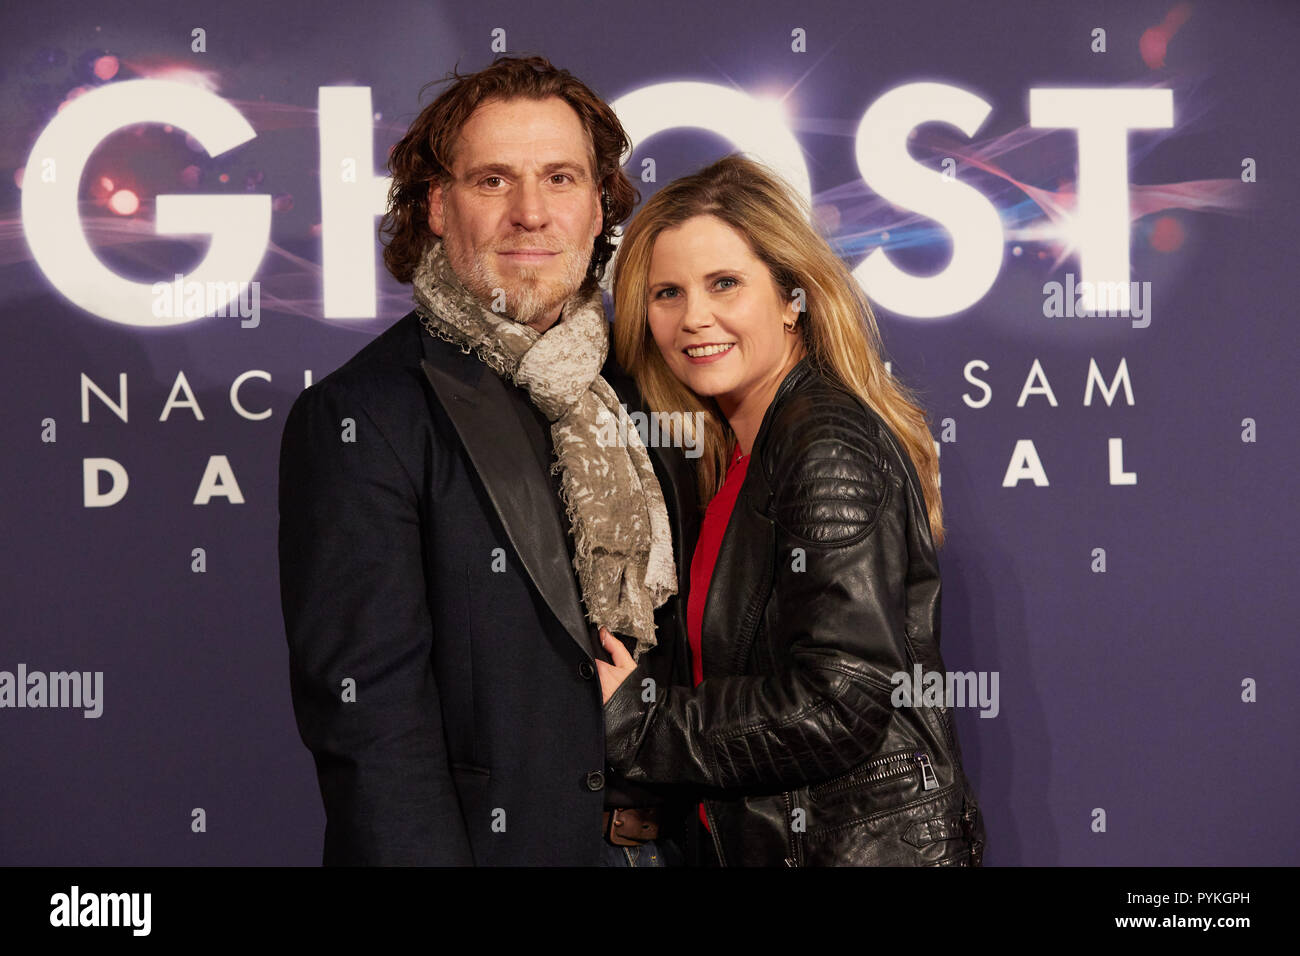 "Hamburg, Germany. 28th Oct, 2018. Michaela Schaffrath, actress, and her husband Carlos Anthonyo come to the Hamburg premiere of the musical ""Ghost"". The musical will be a guest at the Operettenhaus until the end of February. Credit: Georg Wendt/dpa/Alamy Live News Stock Photo"